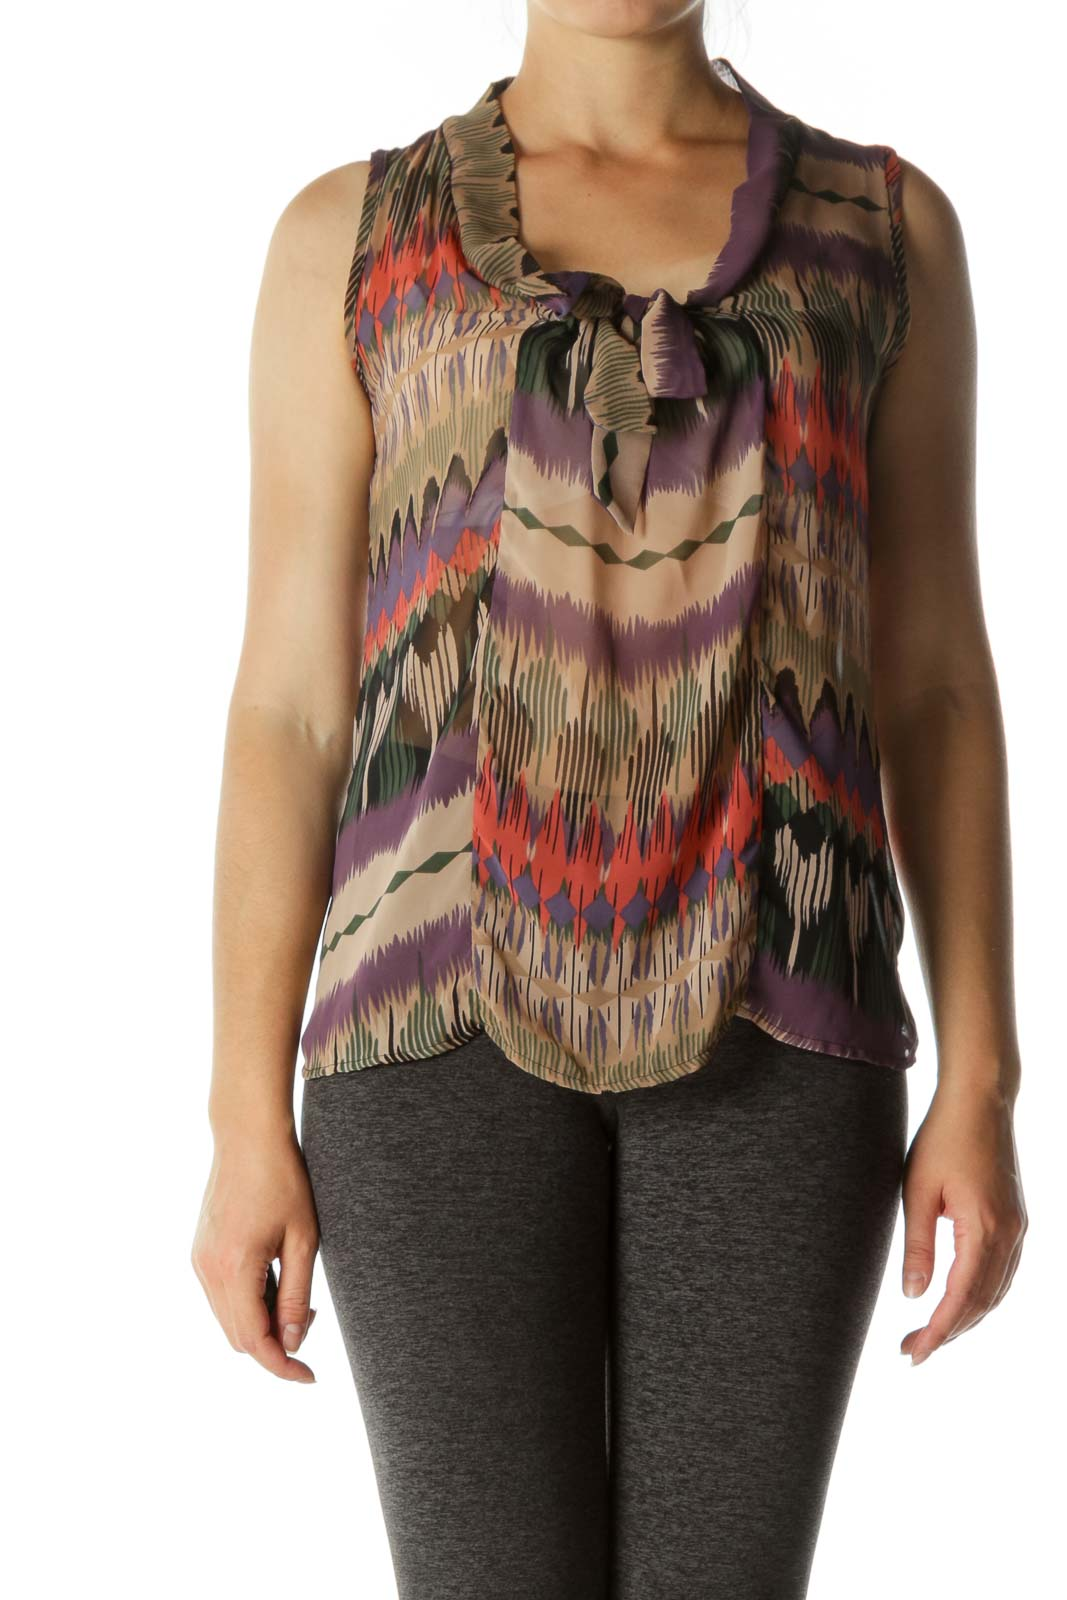 Multicolored Print Translucent Tank Top